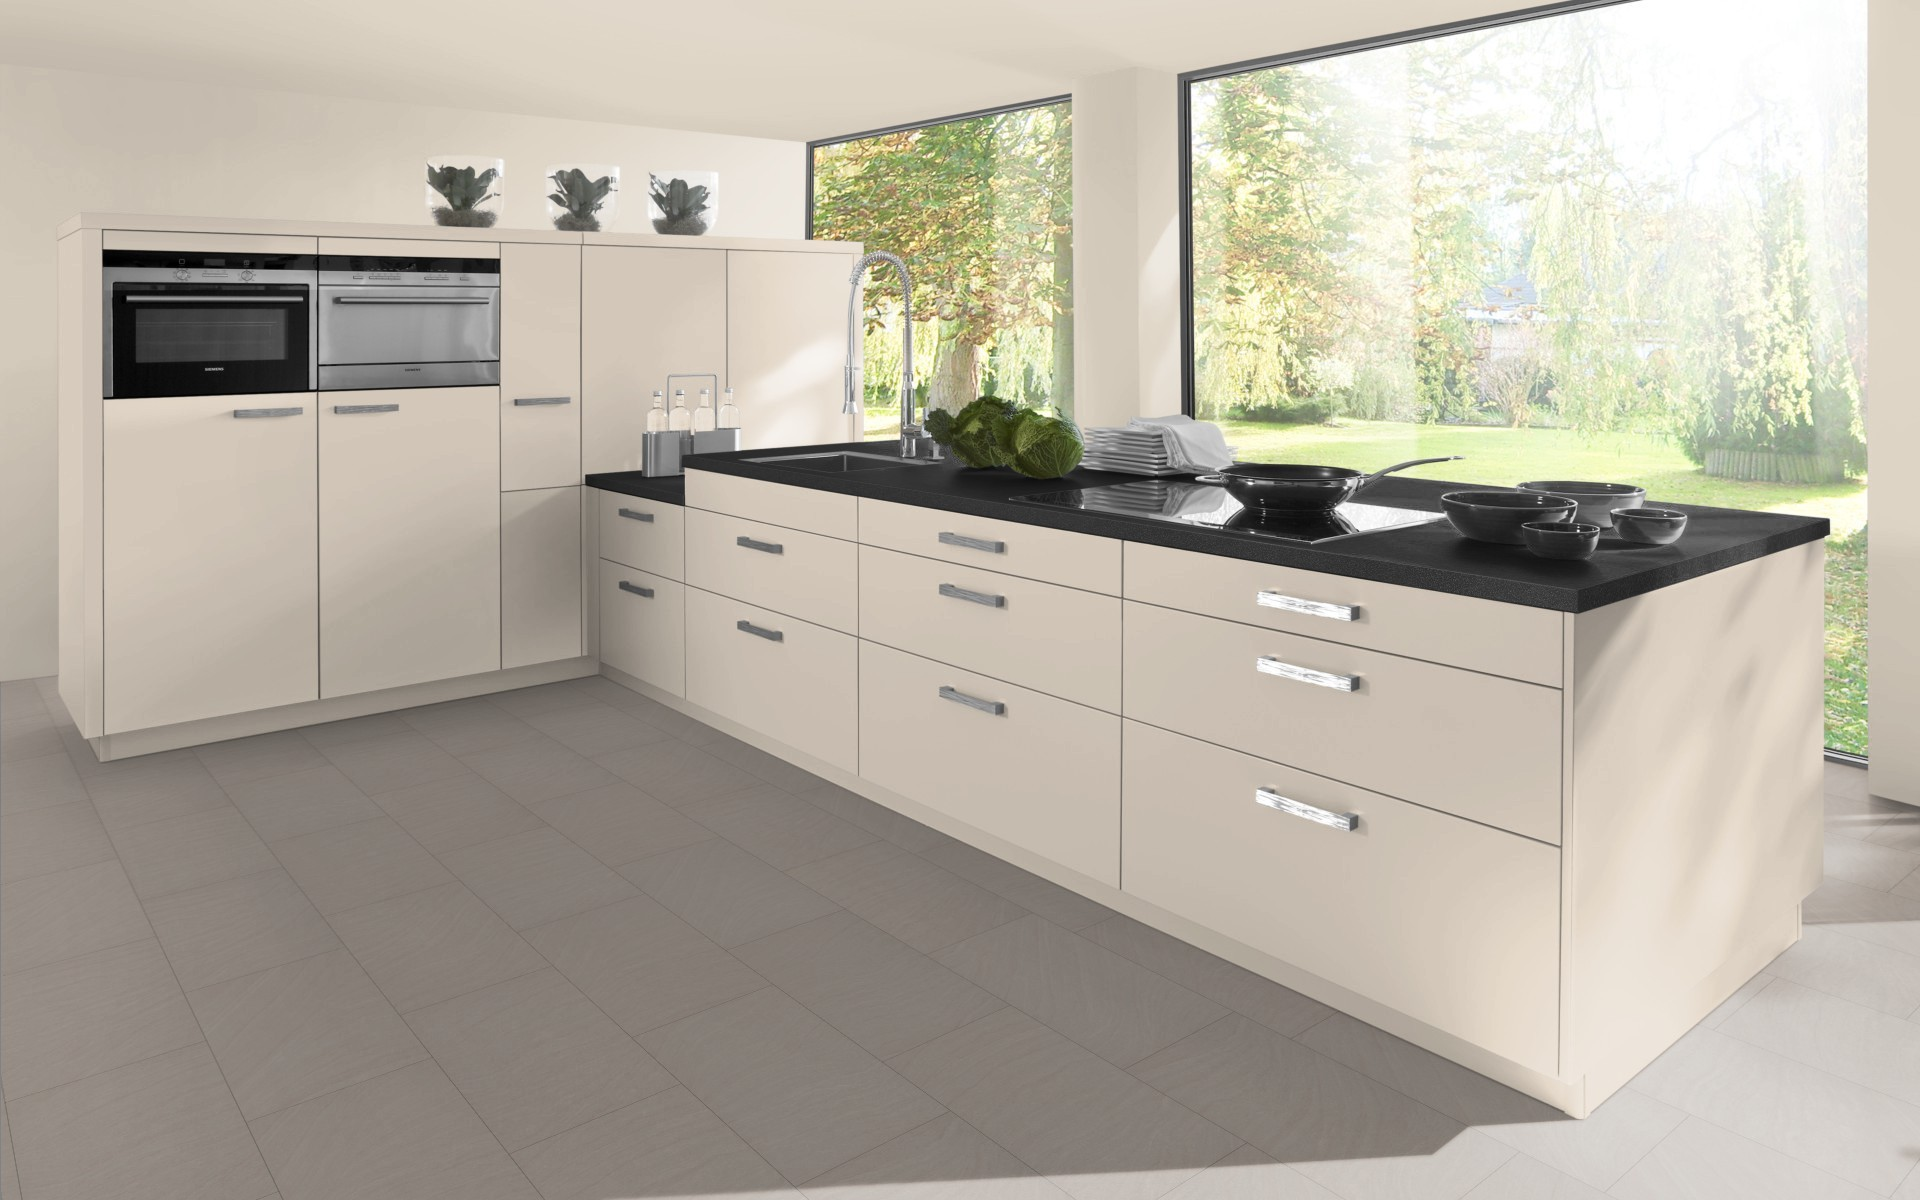 Single Tall Kitchen Cabinet high gloss - tall height - single oven & microwave housing doors